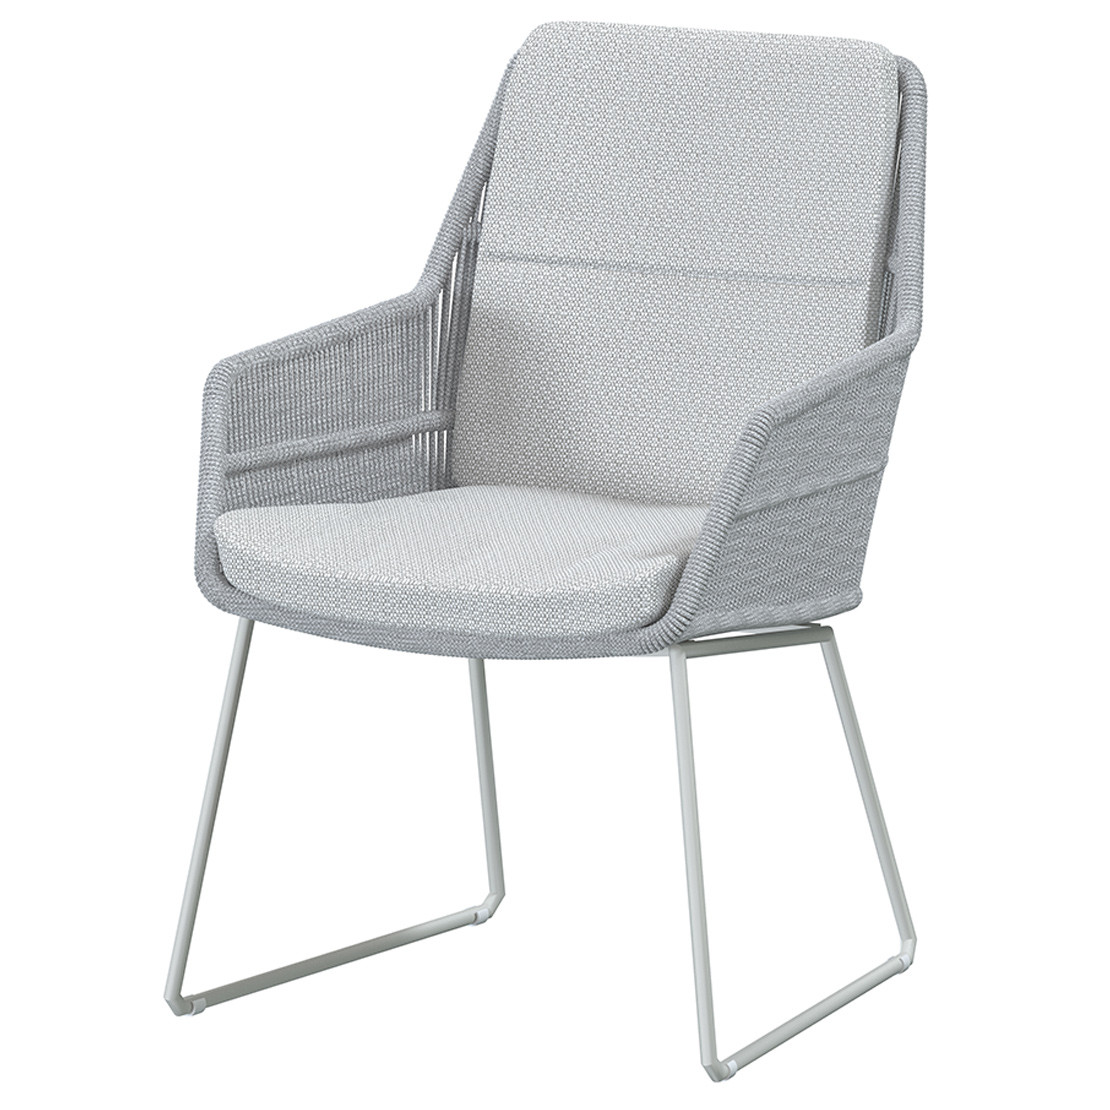 Valencia dining chair Frozen with 2 cushions